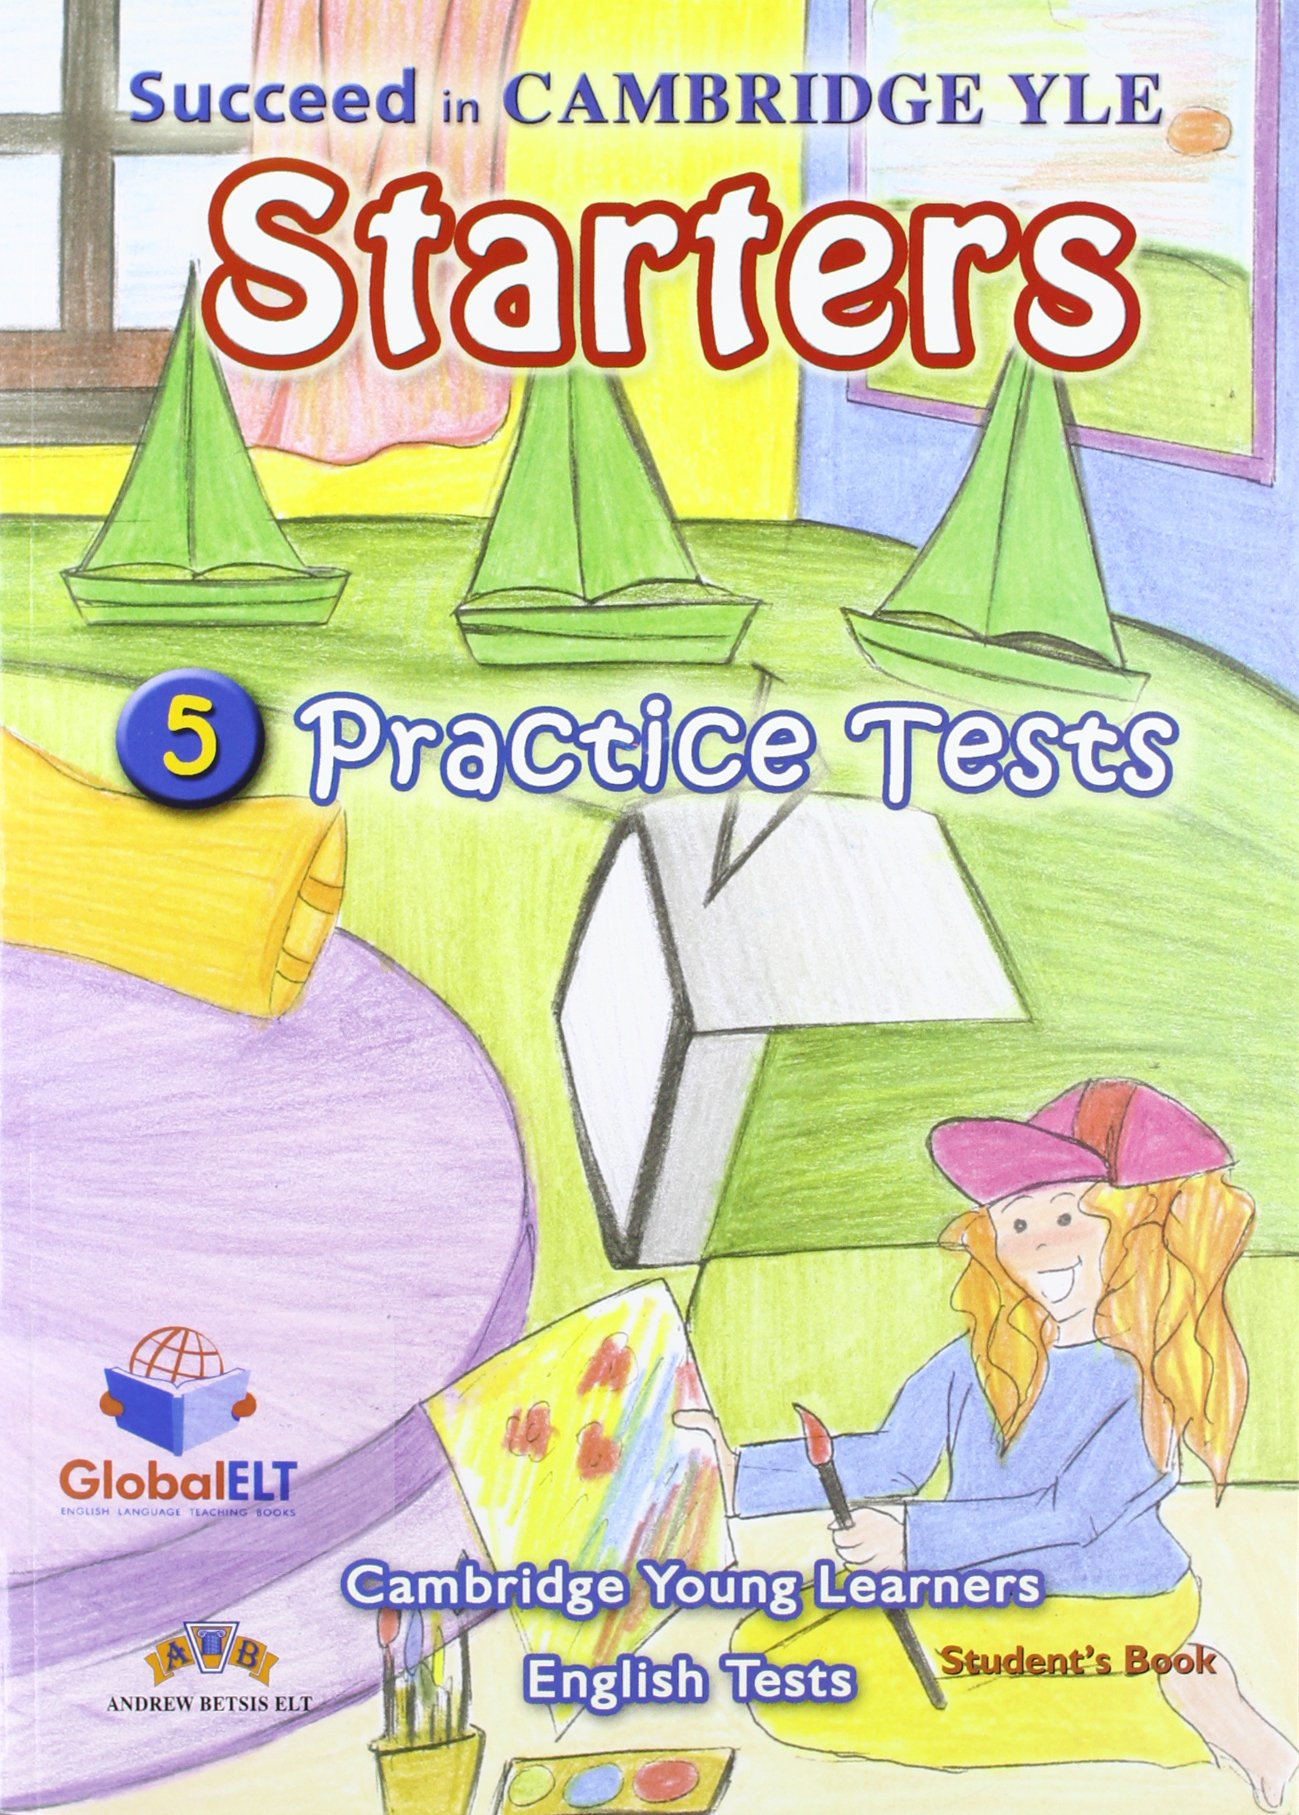 Succeed in Cambridge YLE Starters - Self Study Edition: 5 Practice Tests pdf